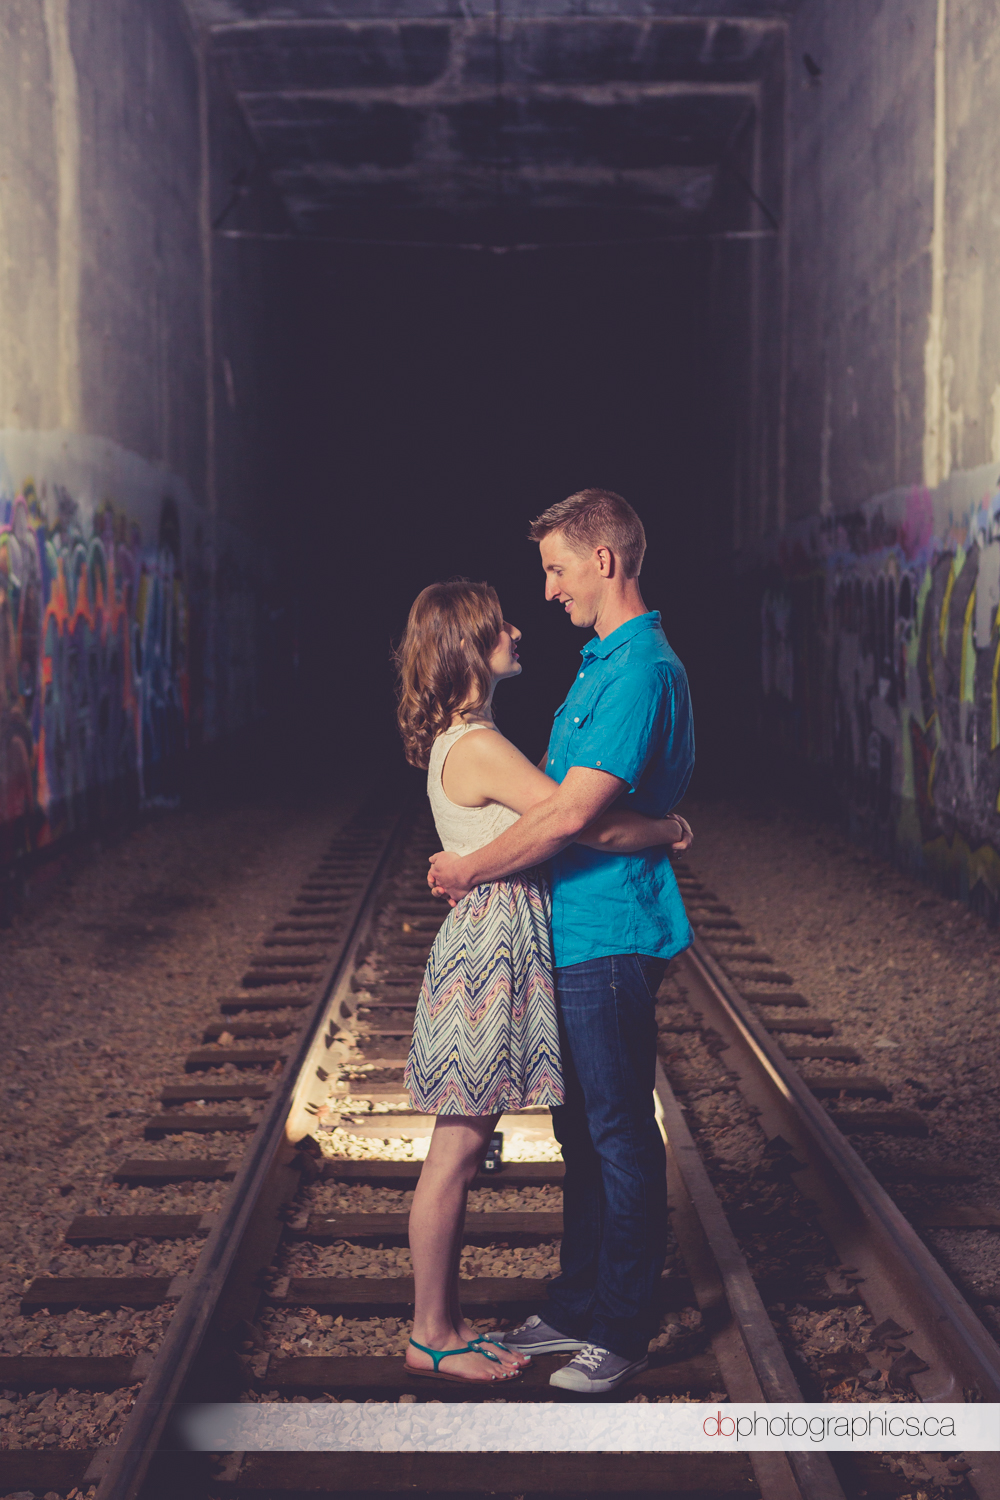 Cassie & Drew - Engagement Session - 20150820 - 0069.jpg